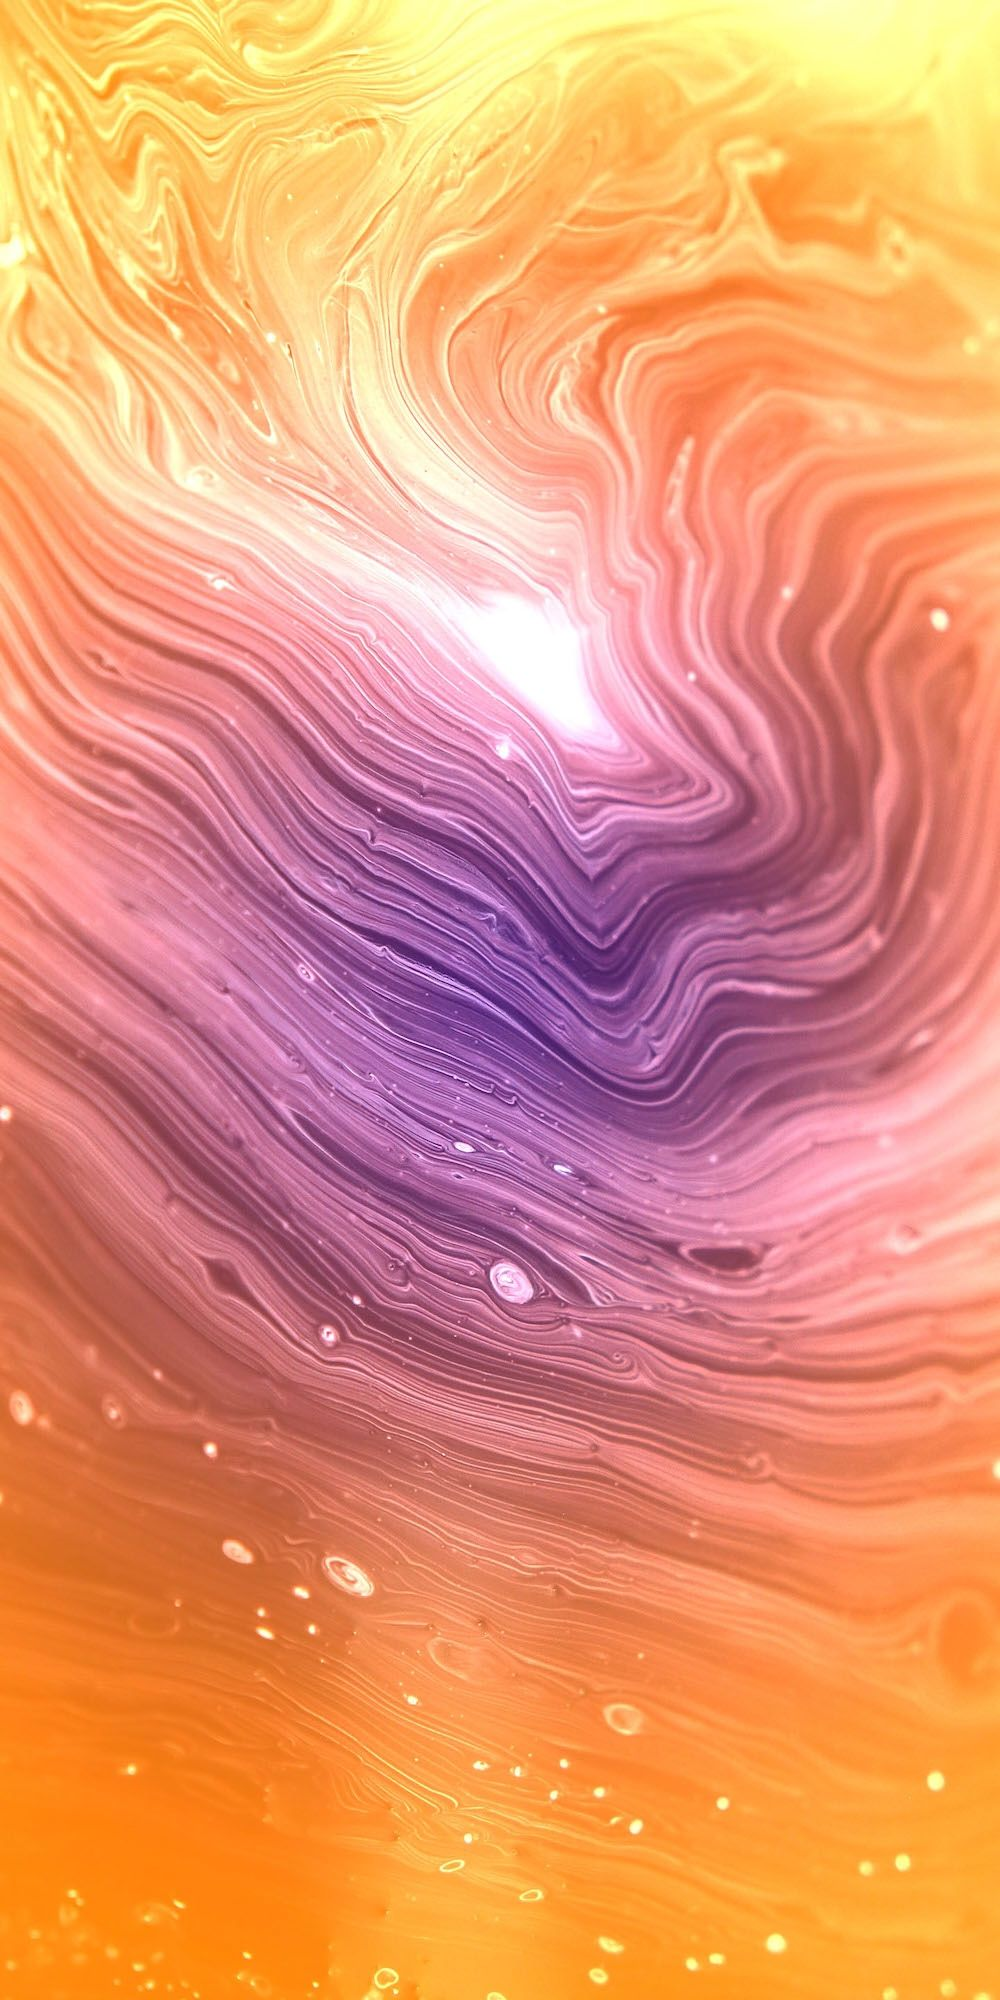 The Iphone X Wallpaper Thread Page 47 Iphone Ipad Ipod